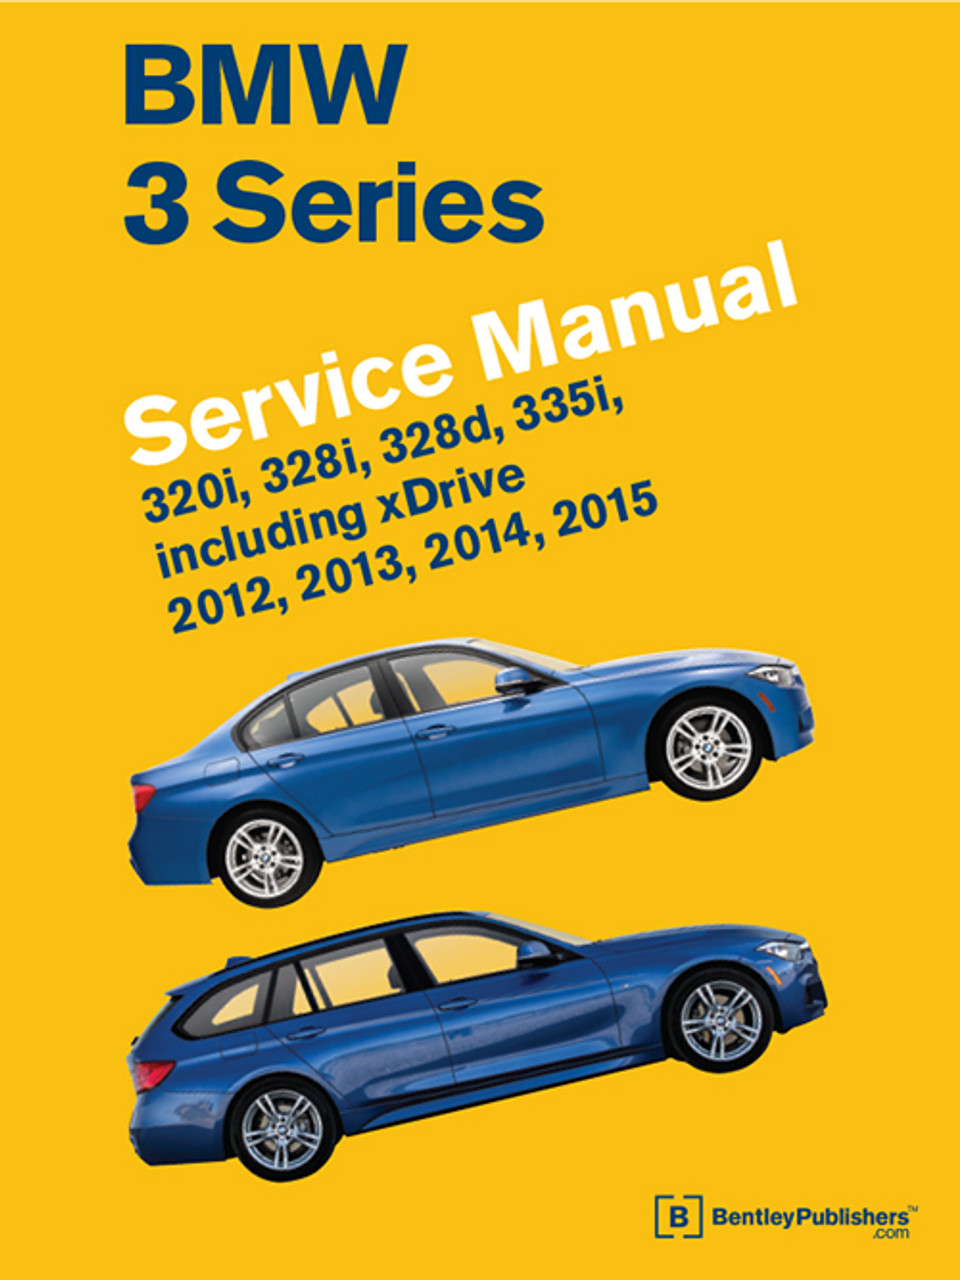 bmw 3 series f30 f31 f34 2012 2015 workshop service manual rh automotobookshop com au bmw 320d f30 owners manual pdf bmw 320d e90 service manual pdf